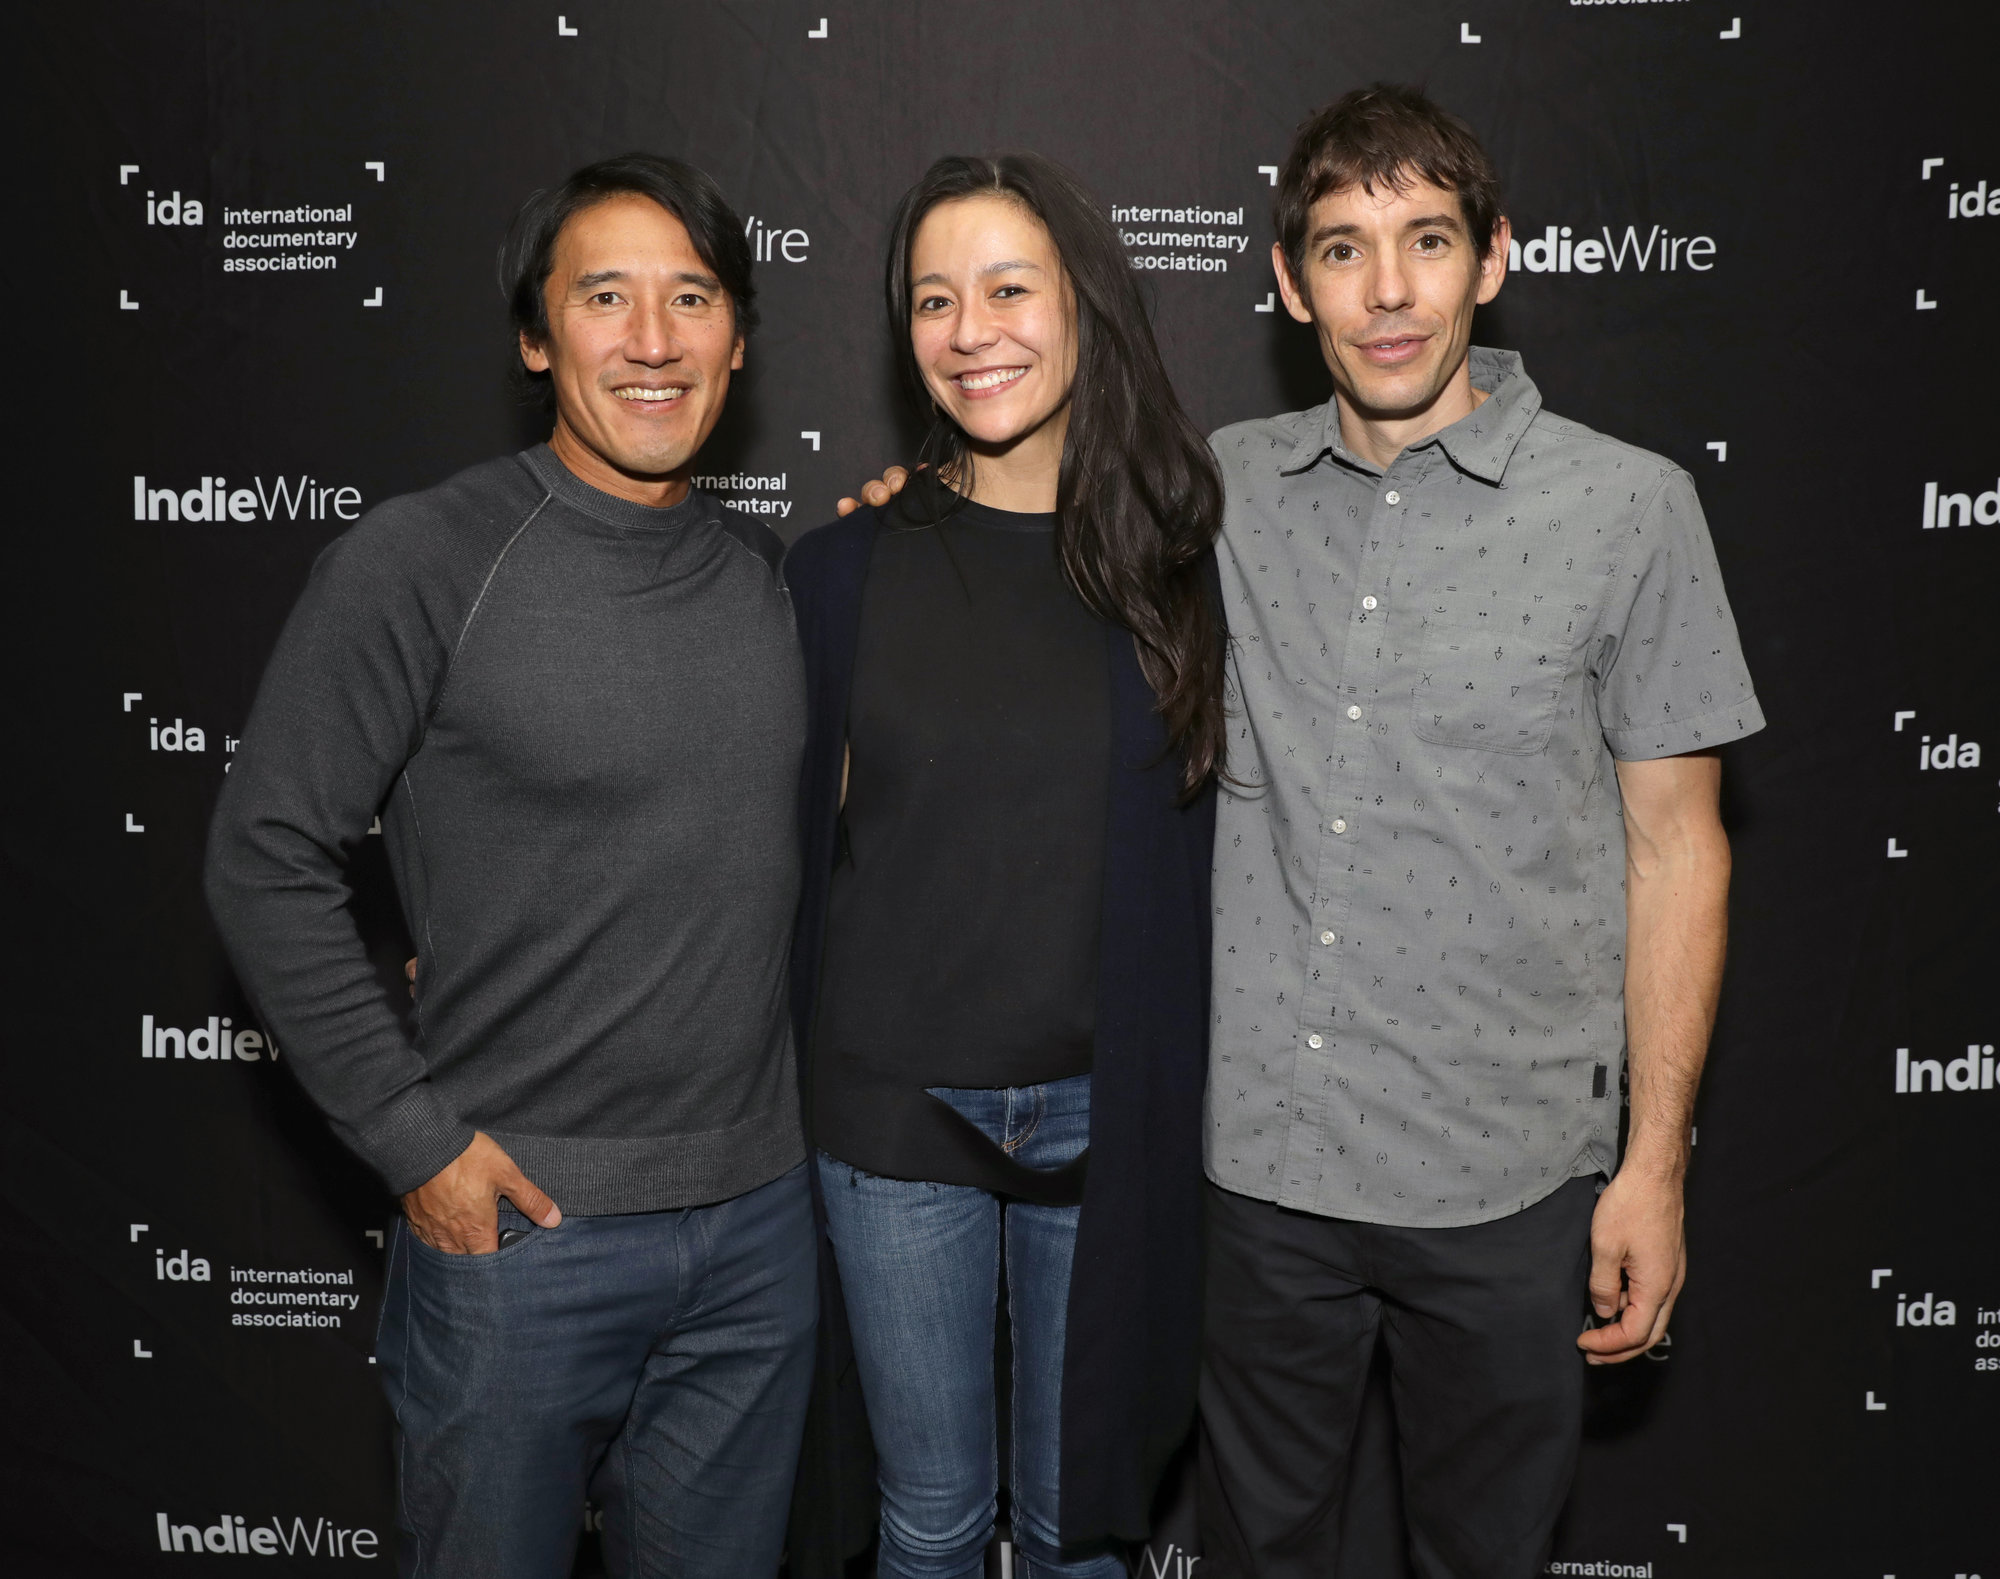 Jimmy Chin, Chai Vasarhelyi and Alex Honnold at IDA Documentary Screening Series.